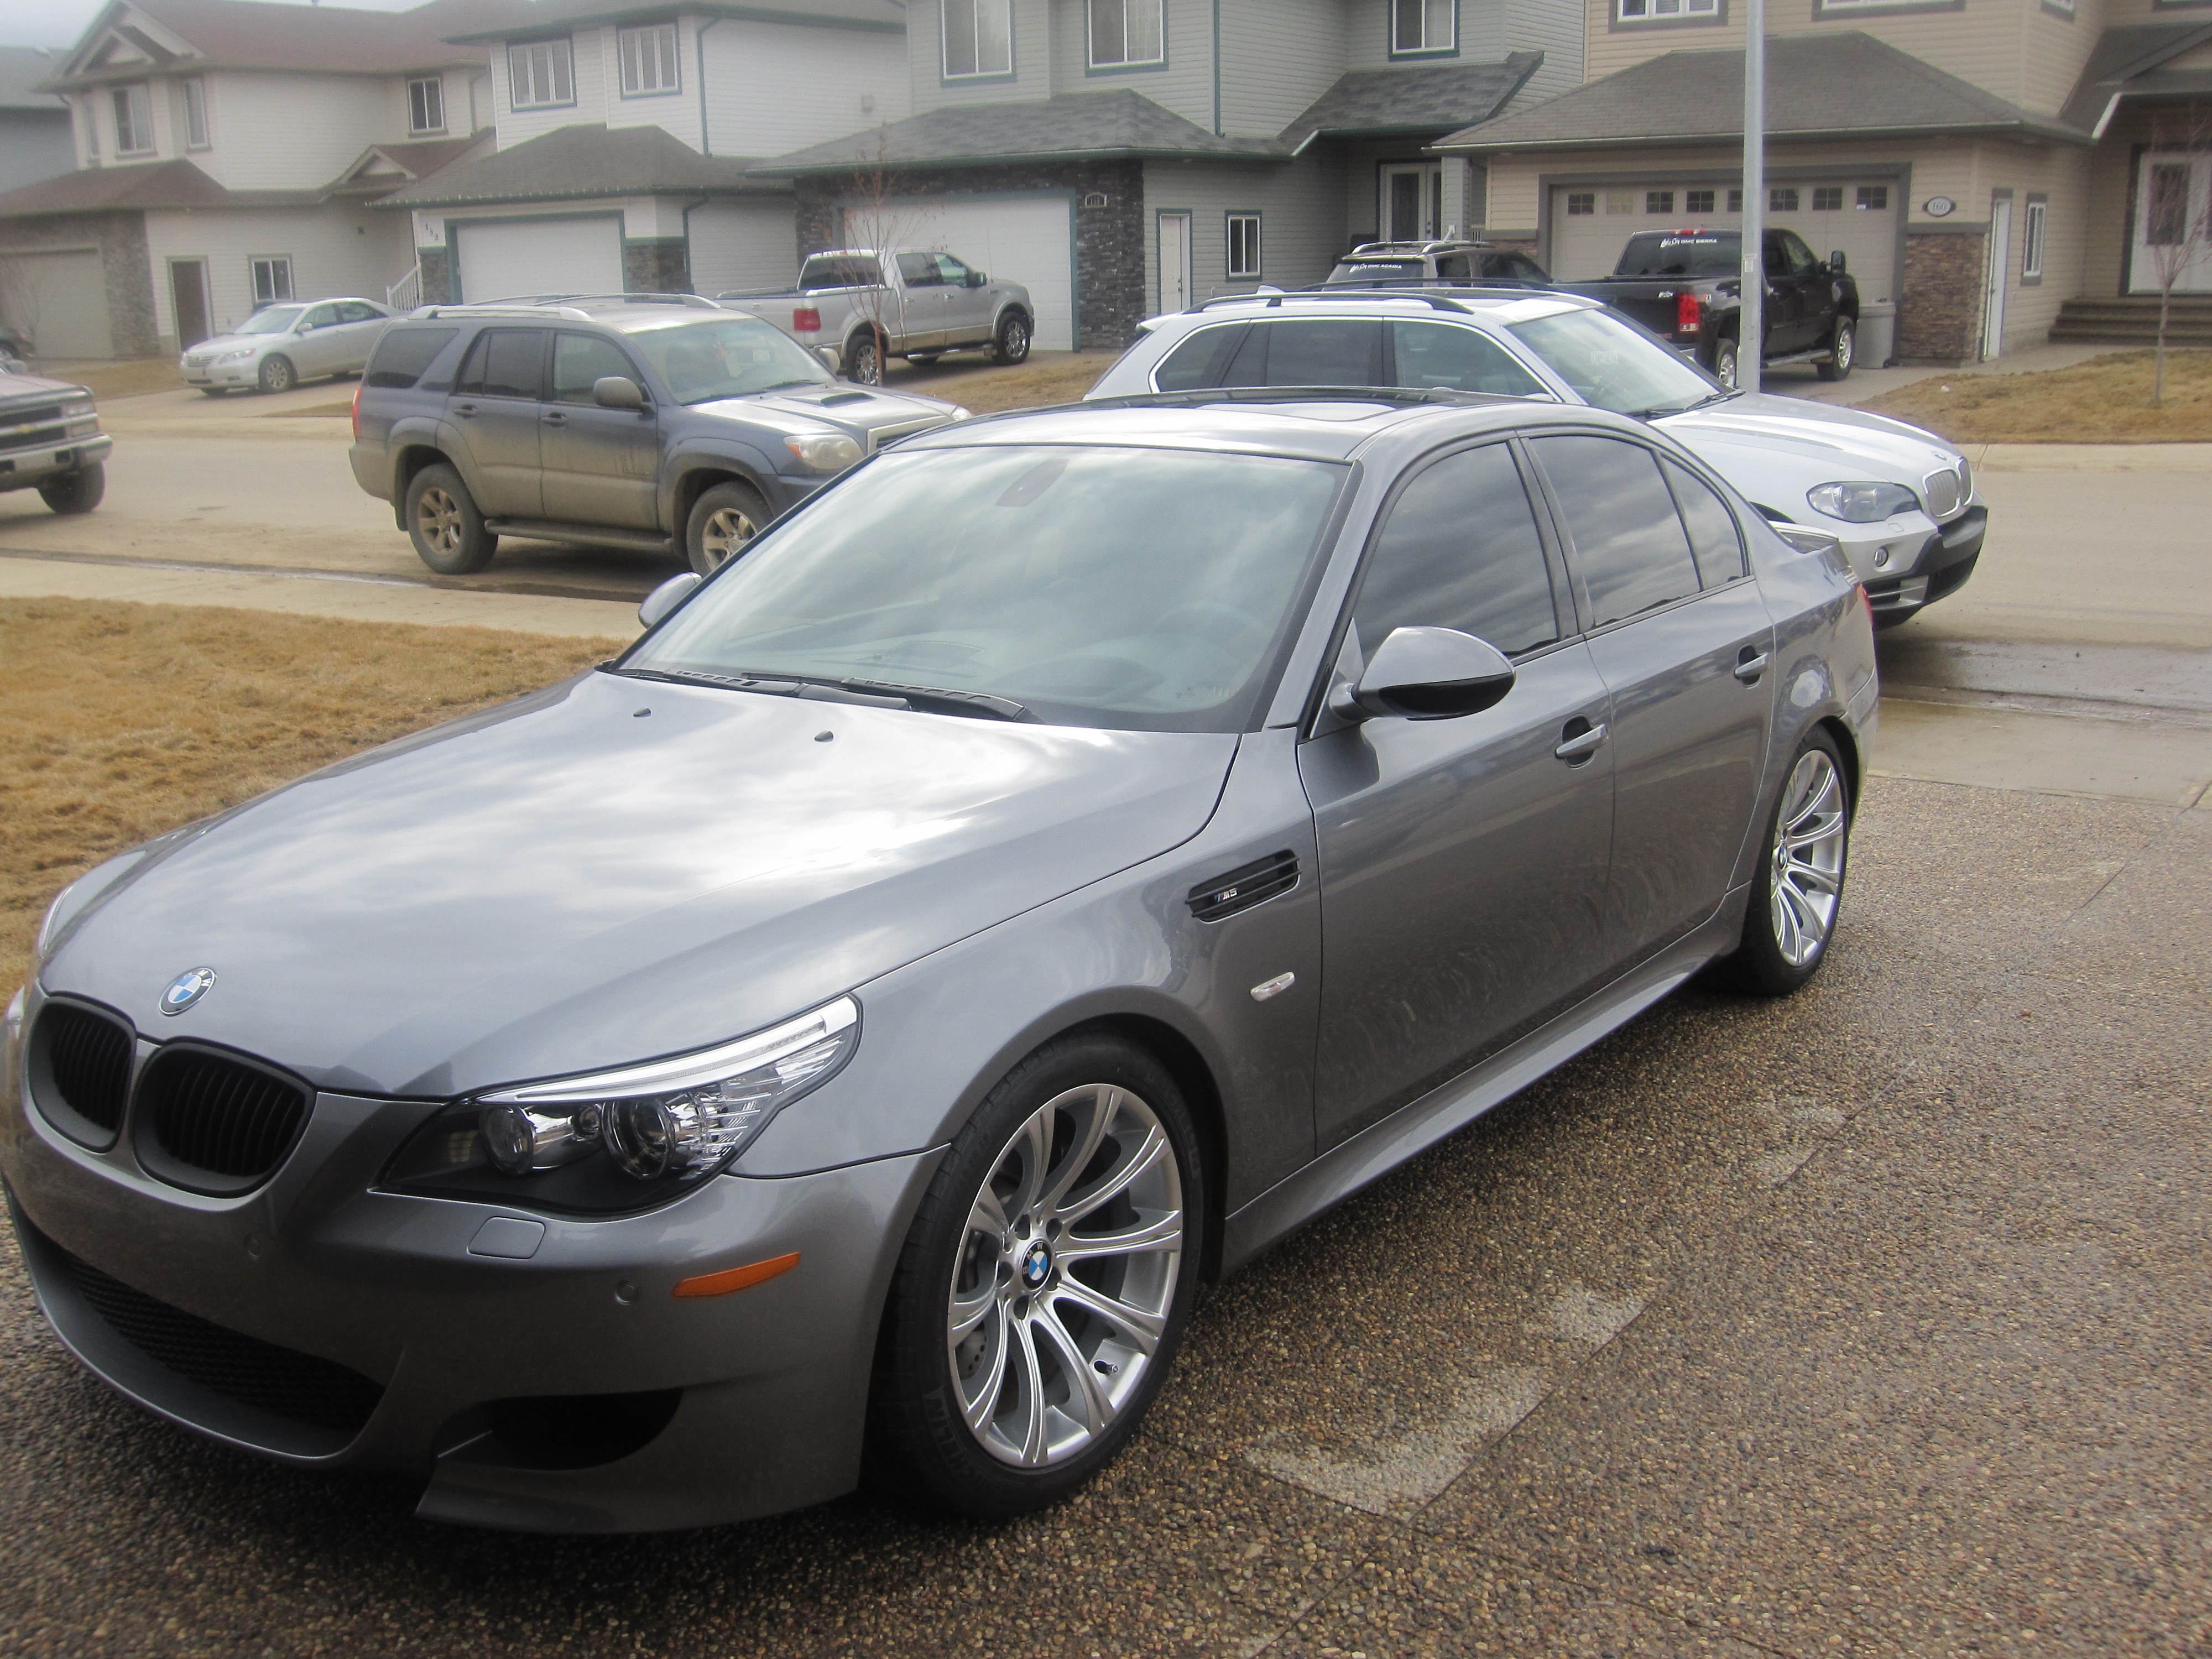 member dmax27 2010 bmw m5 with some new modifications - bmw m5